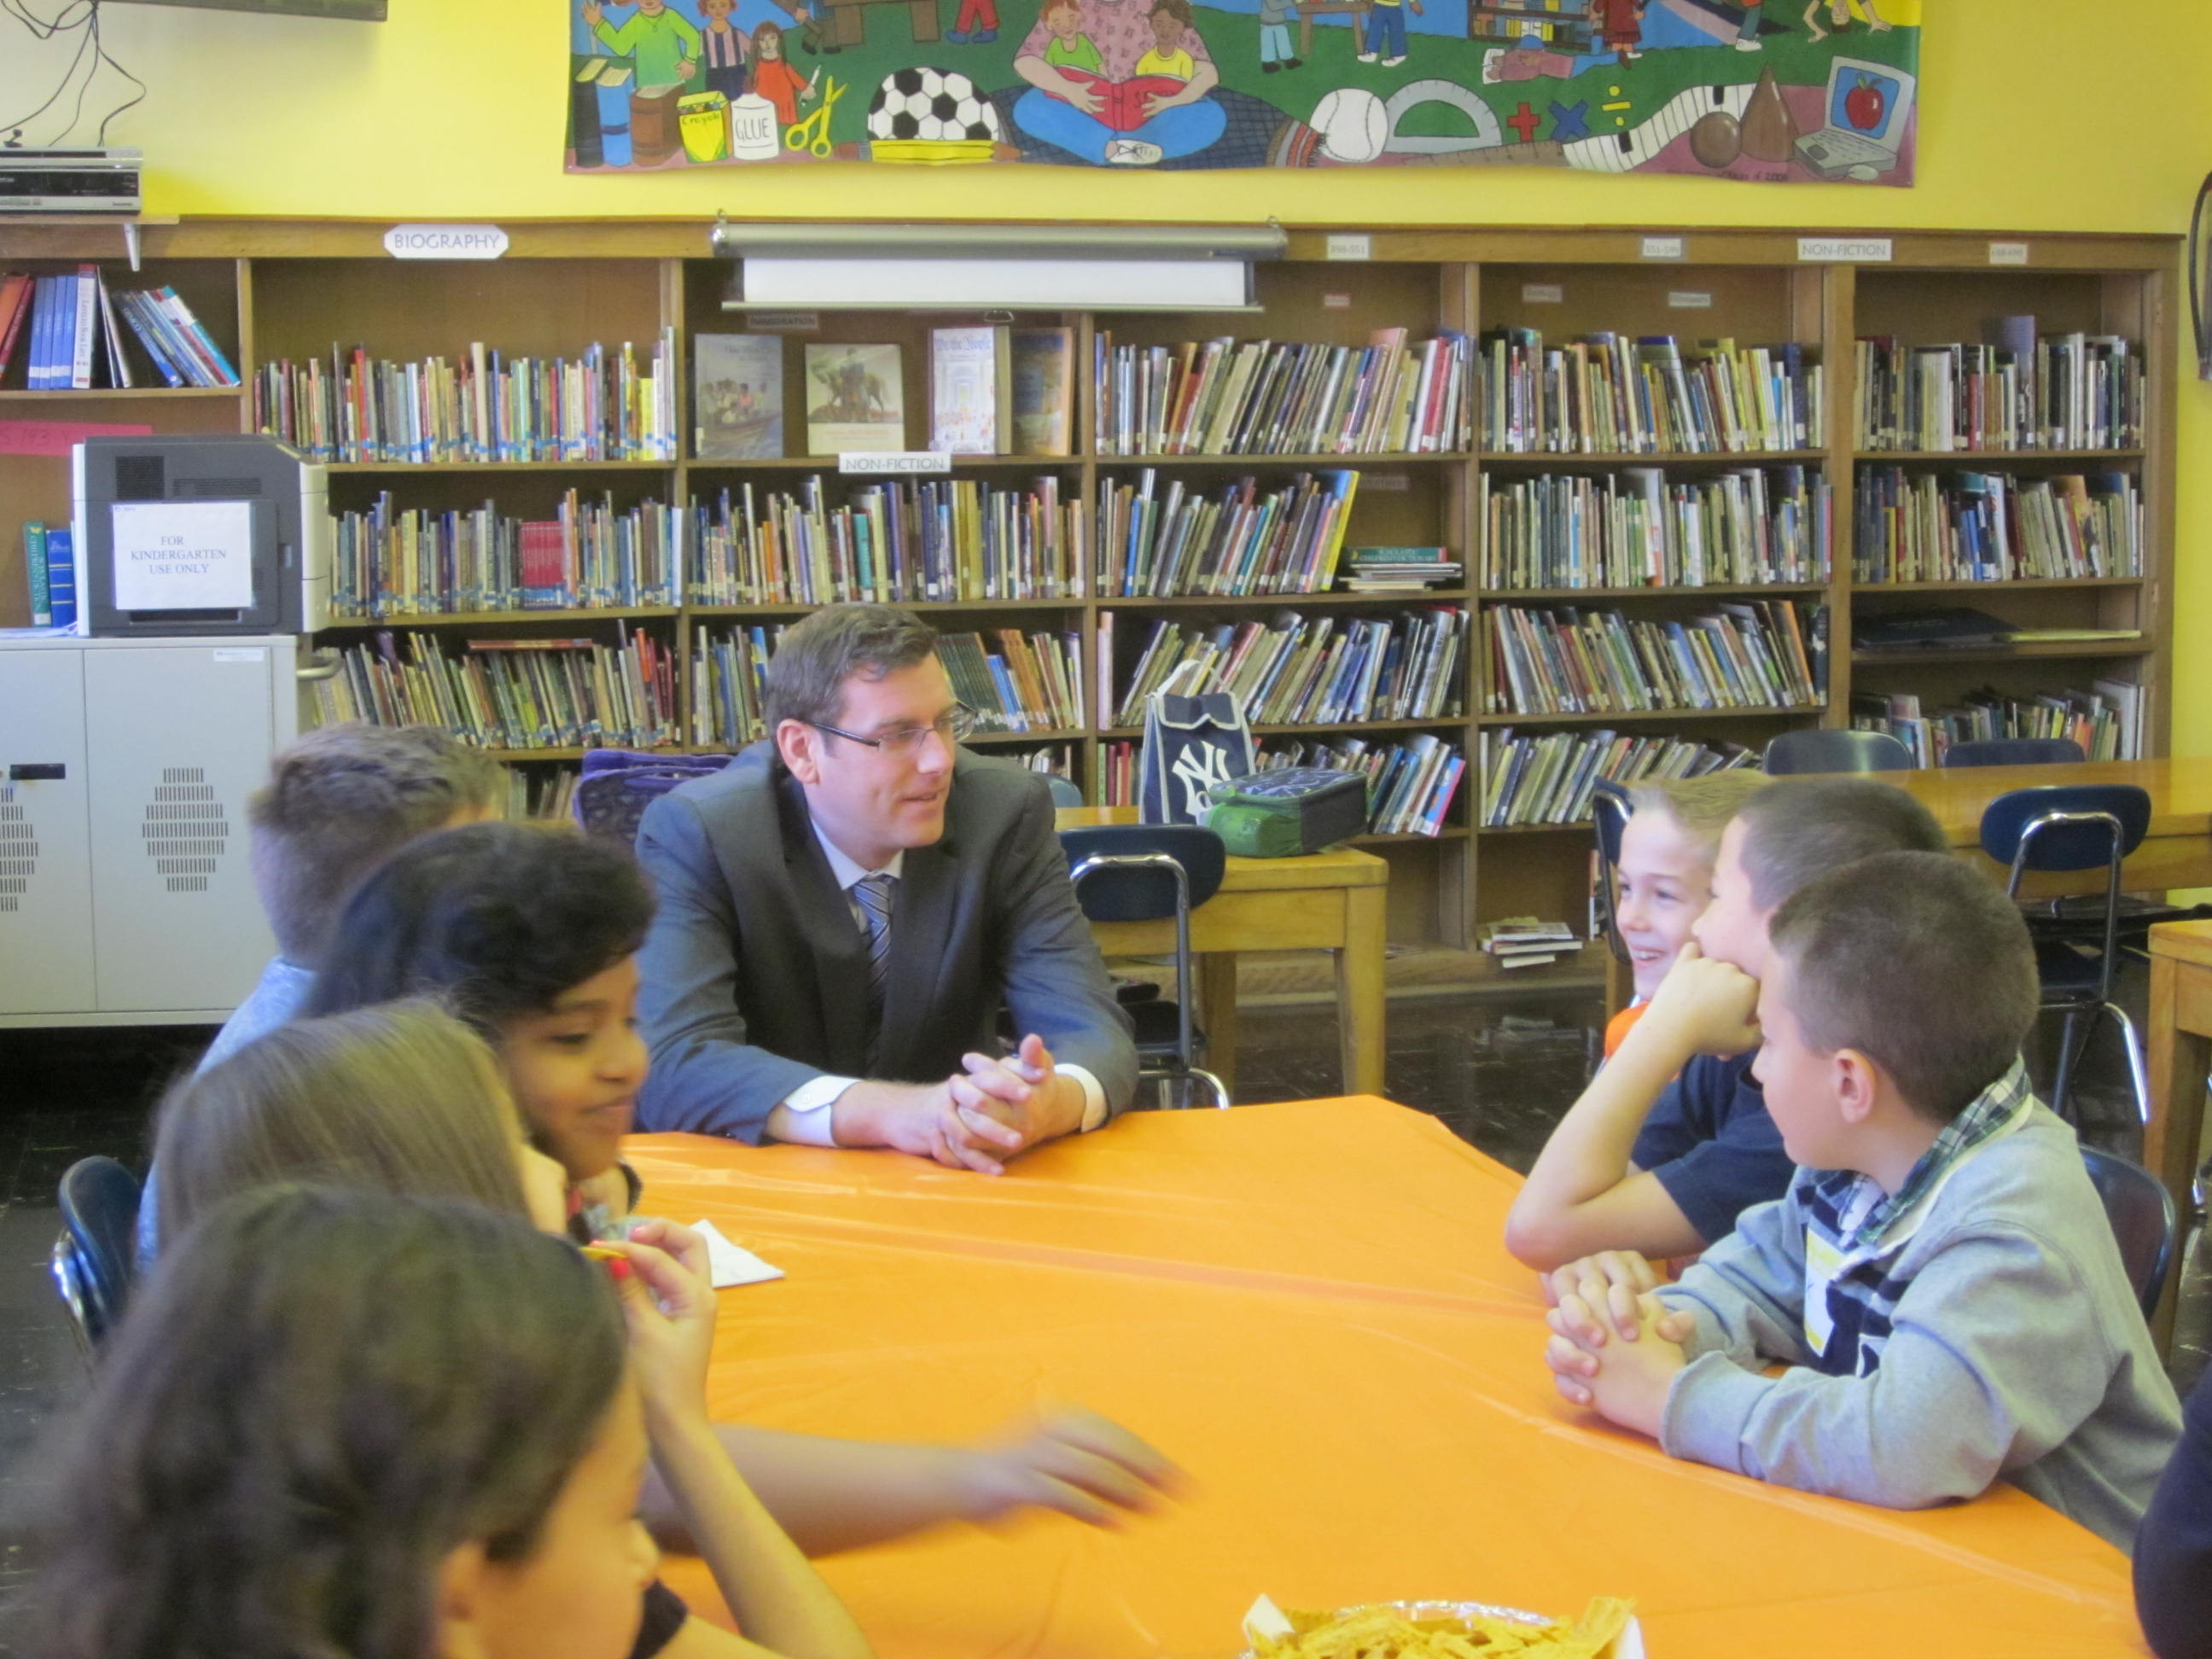 On Monday, October 28, 2013, Assemblyman Braunstein served as Principal for a Day at PS 193: Magnet School of Discovery. He is pictured here with students in the library, where he met with them to answer questions about New York State government and important local issues.